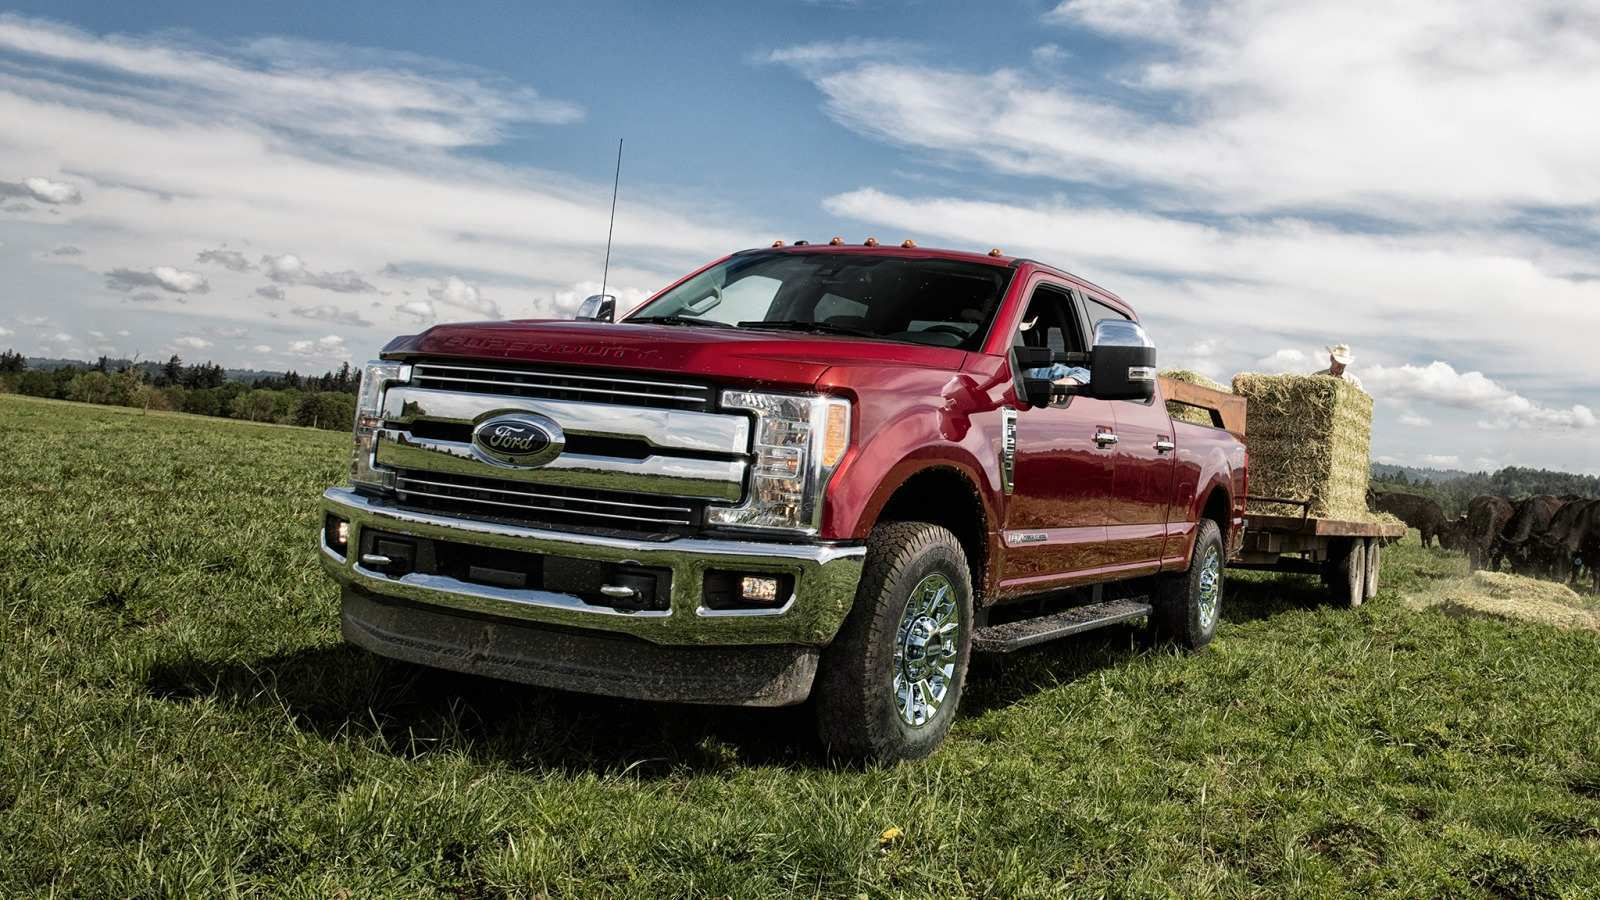 20 Great 2019 Ford Pickup Research New by 2019 Ford Pickup